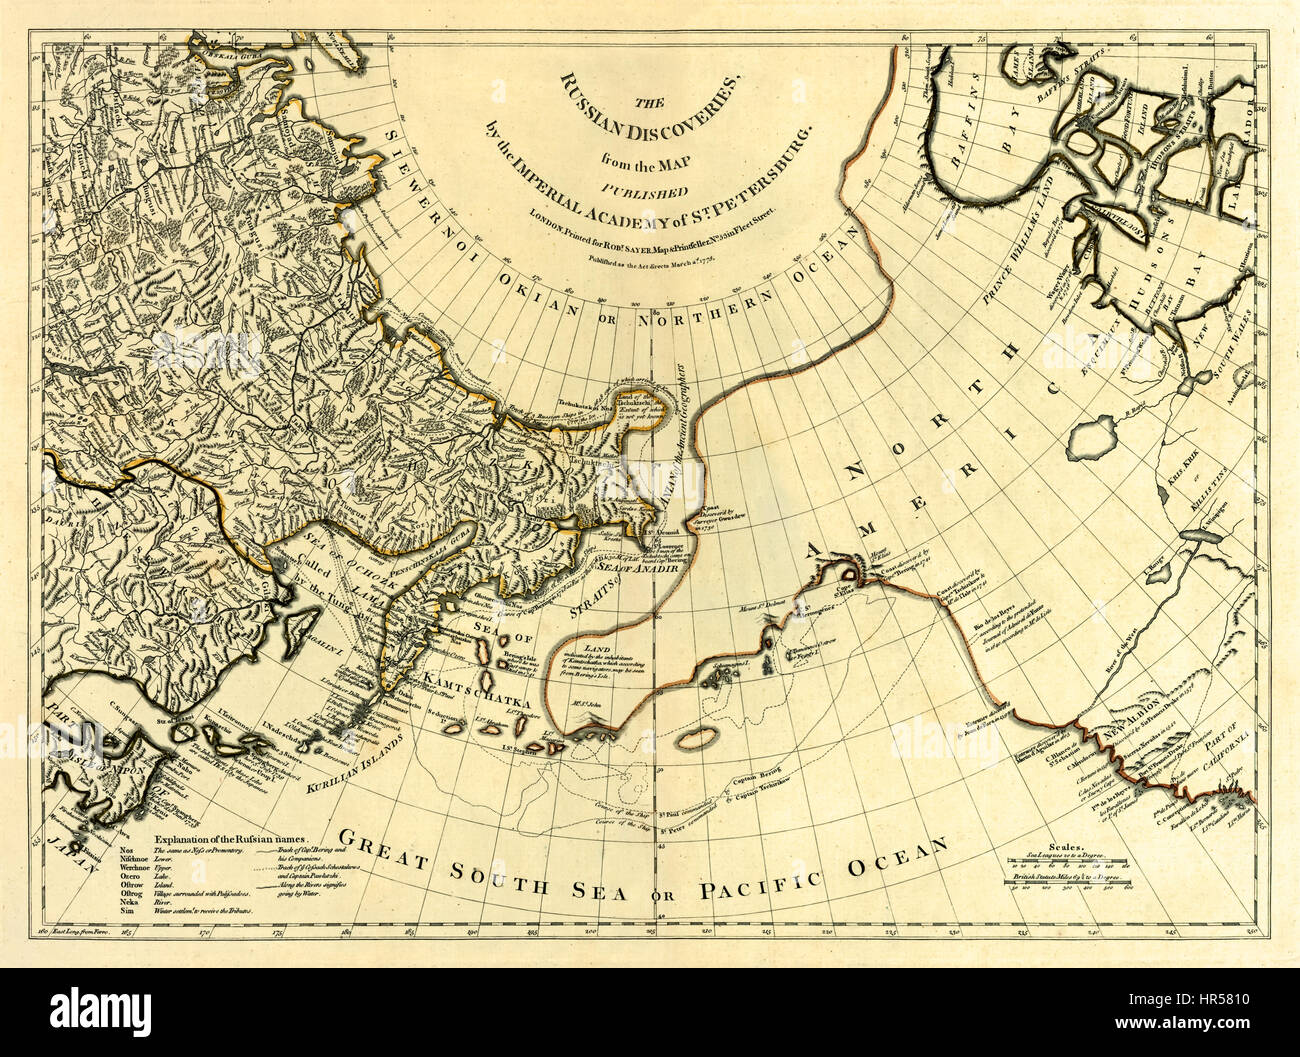 """""""The Russian discoveries from the map published by the Imperial Academy of St. Petersburg."""" Showing the exploration Stock Photo"""